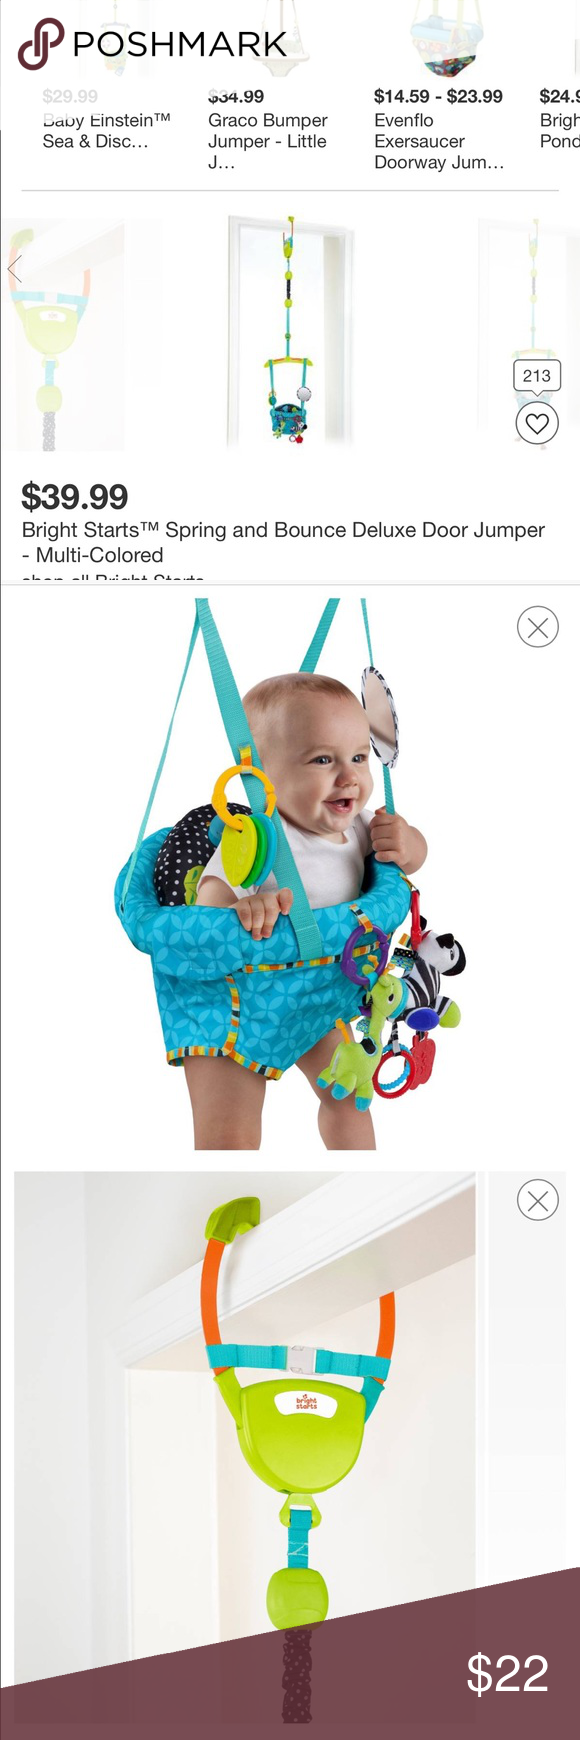 Bright Starts bounce & swing door jumper The Bright Starts™ Bounce ...